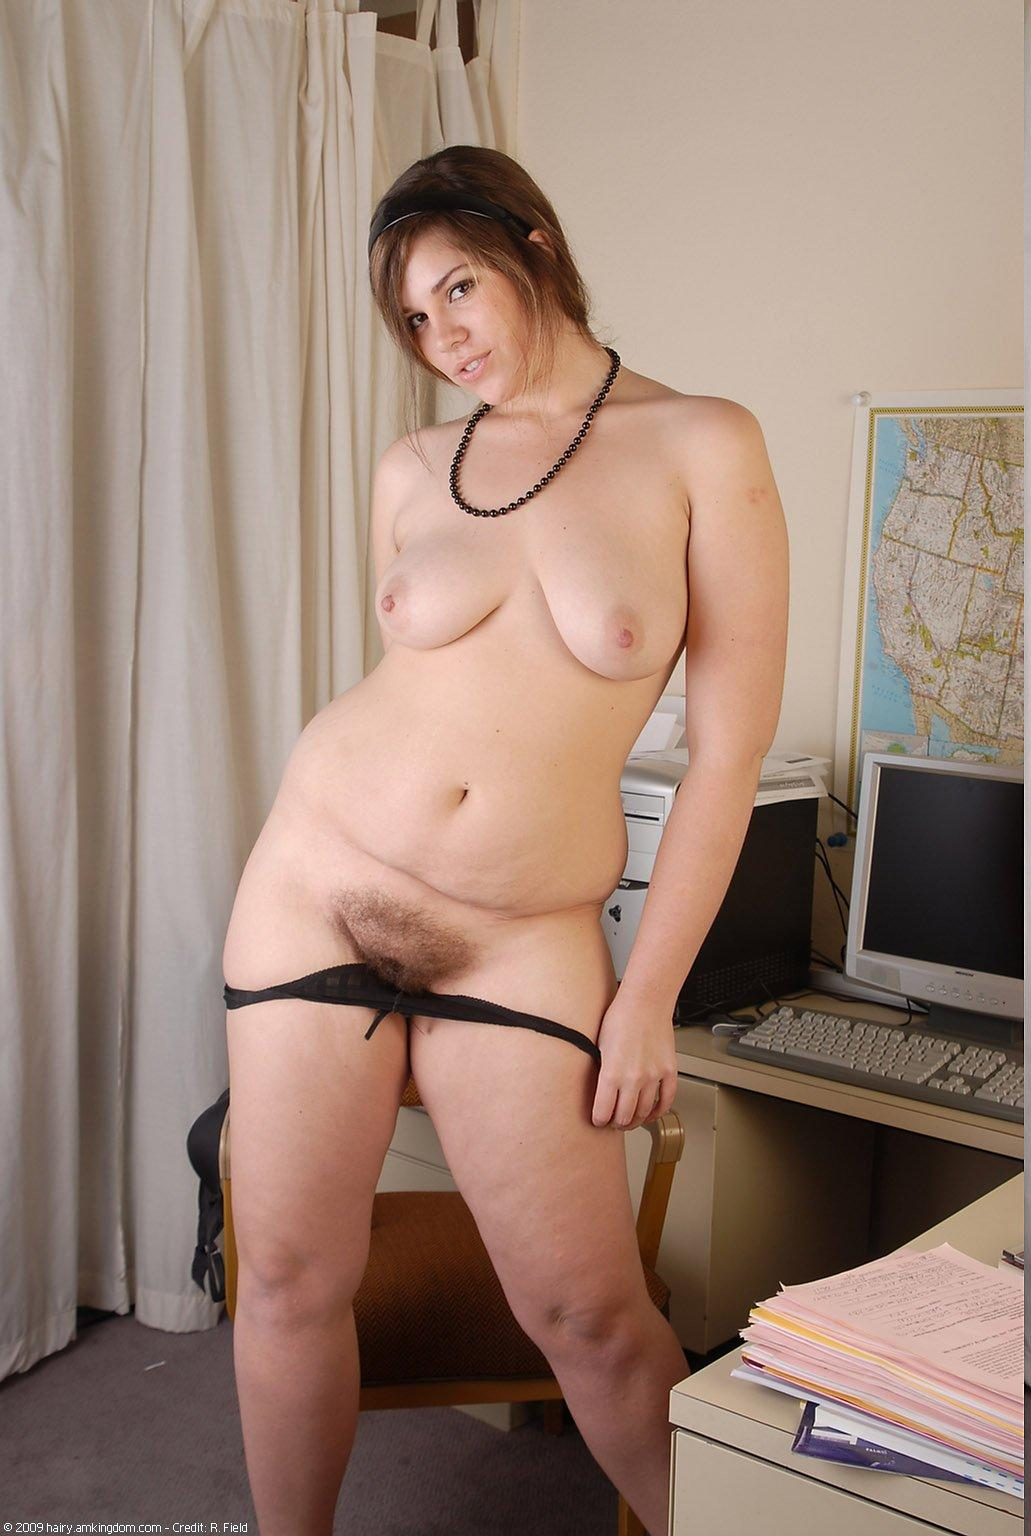 Chubby naked girl pictures